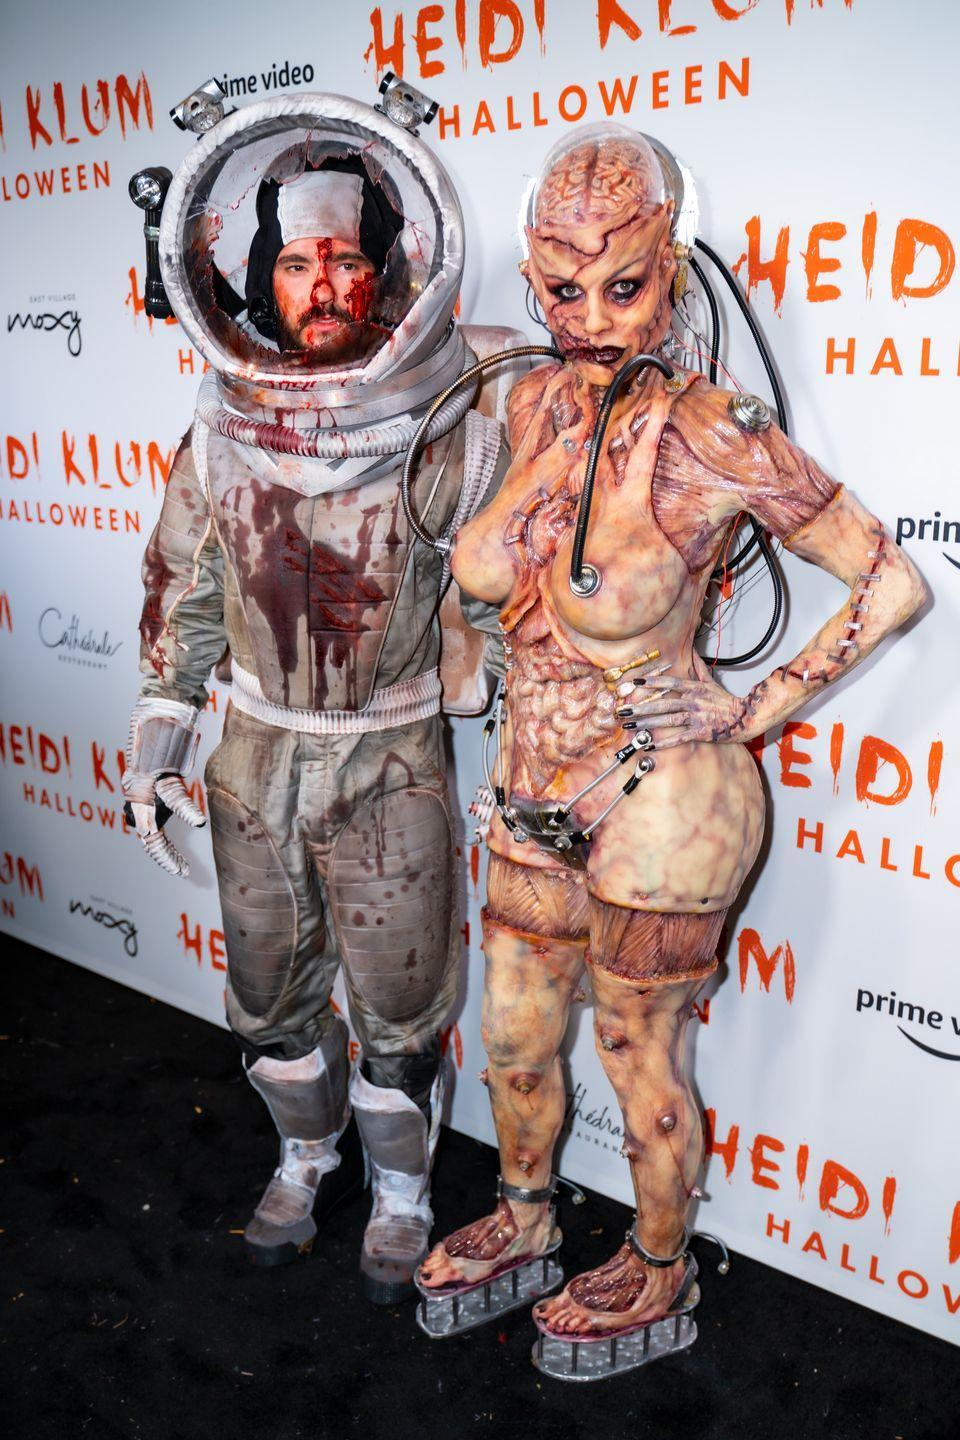 <p>The supermodel partnered up with husband Tom Kaulitz for this gory, out-of-this-world look. Her entire costume came together with 10 hours of prosthetics and makeup, which she shared during her Amazon livestream. </p>